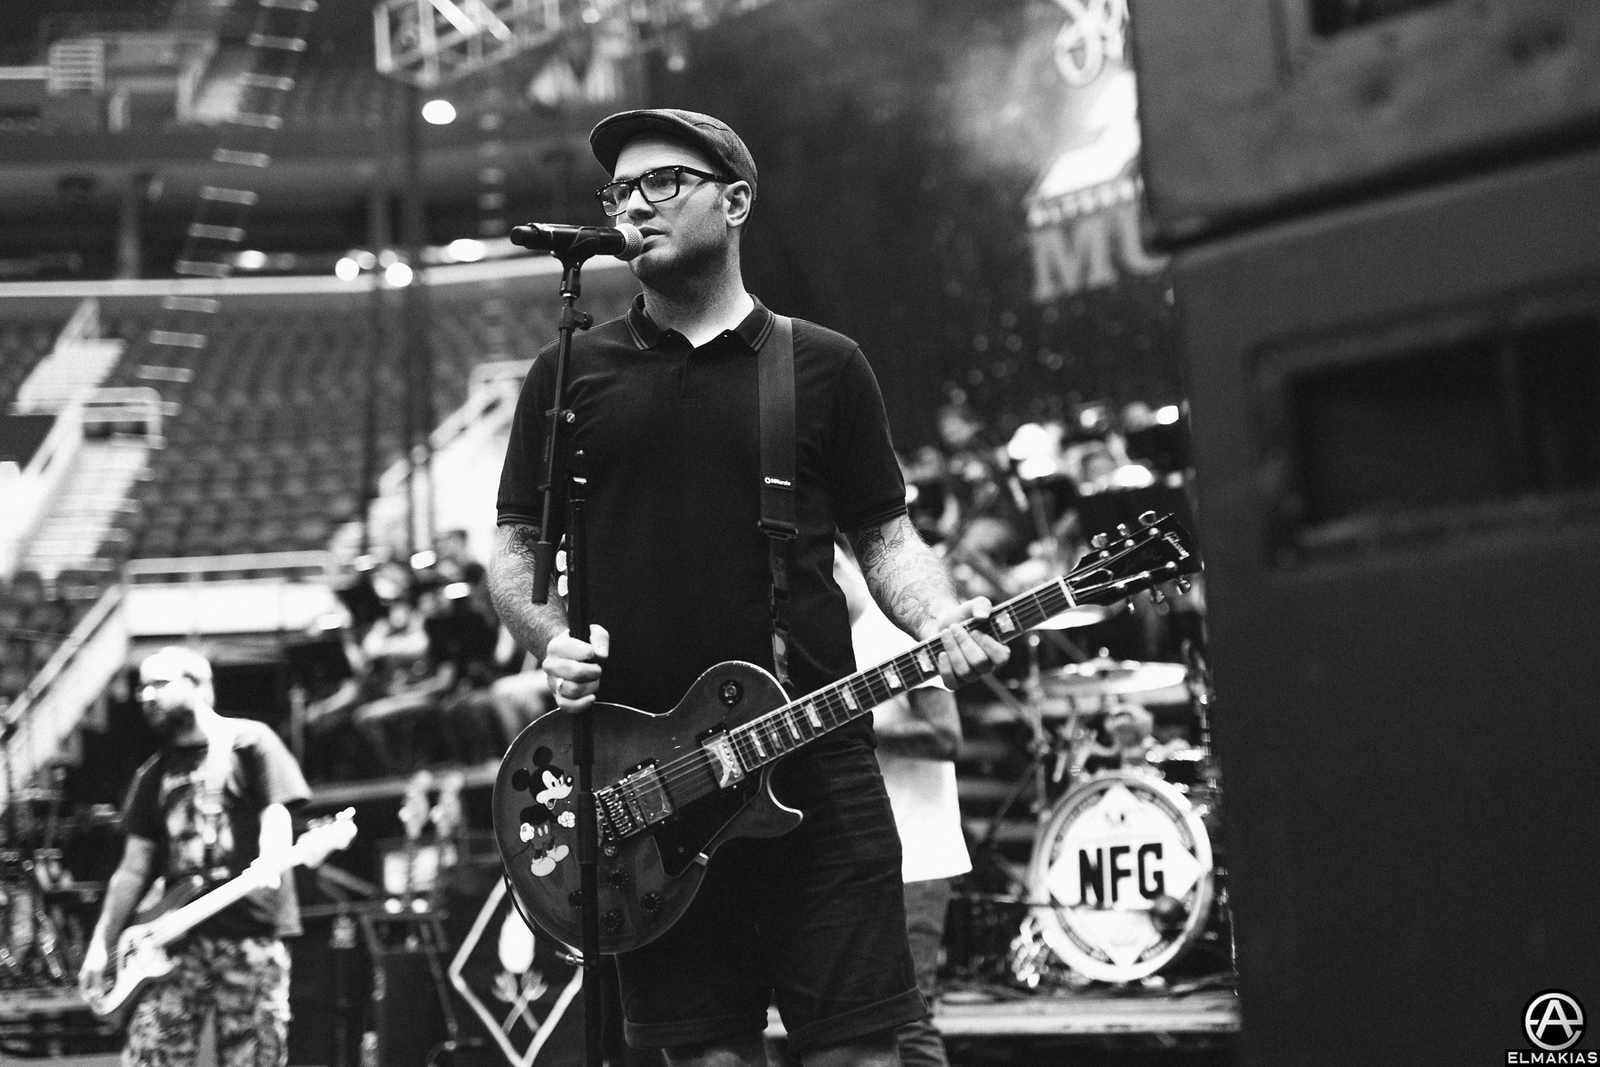 Chad Gilbert of New Found Glory at rehearsals for the Alternative Press Music Awards 2015 by Adam Elmakias